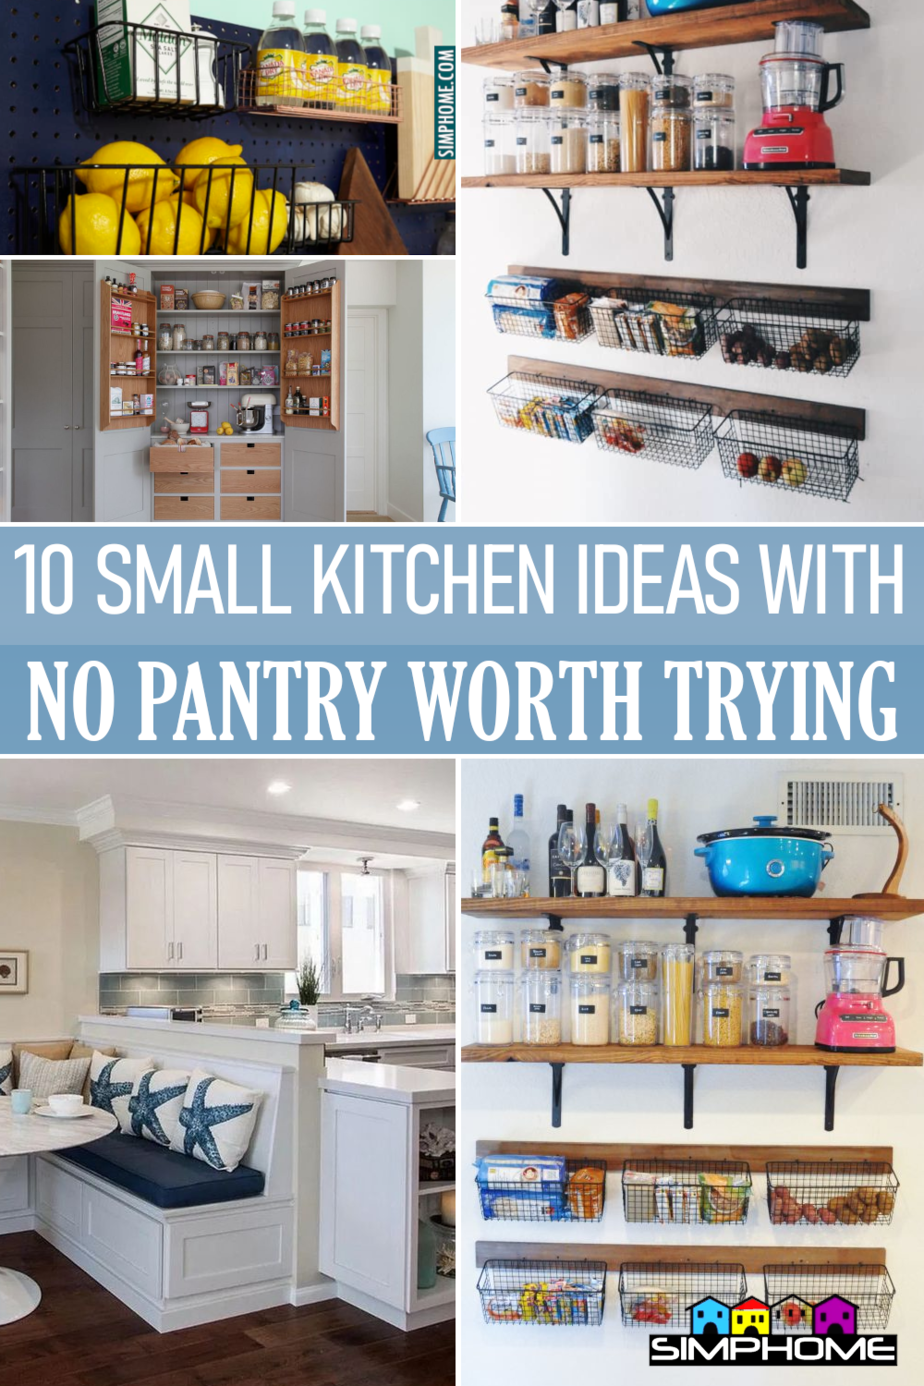 10 Small Kitchen with No Pantry Idea via Simphome.comFeatured